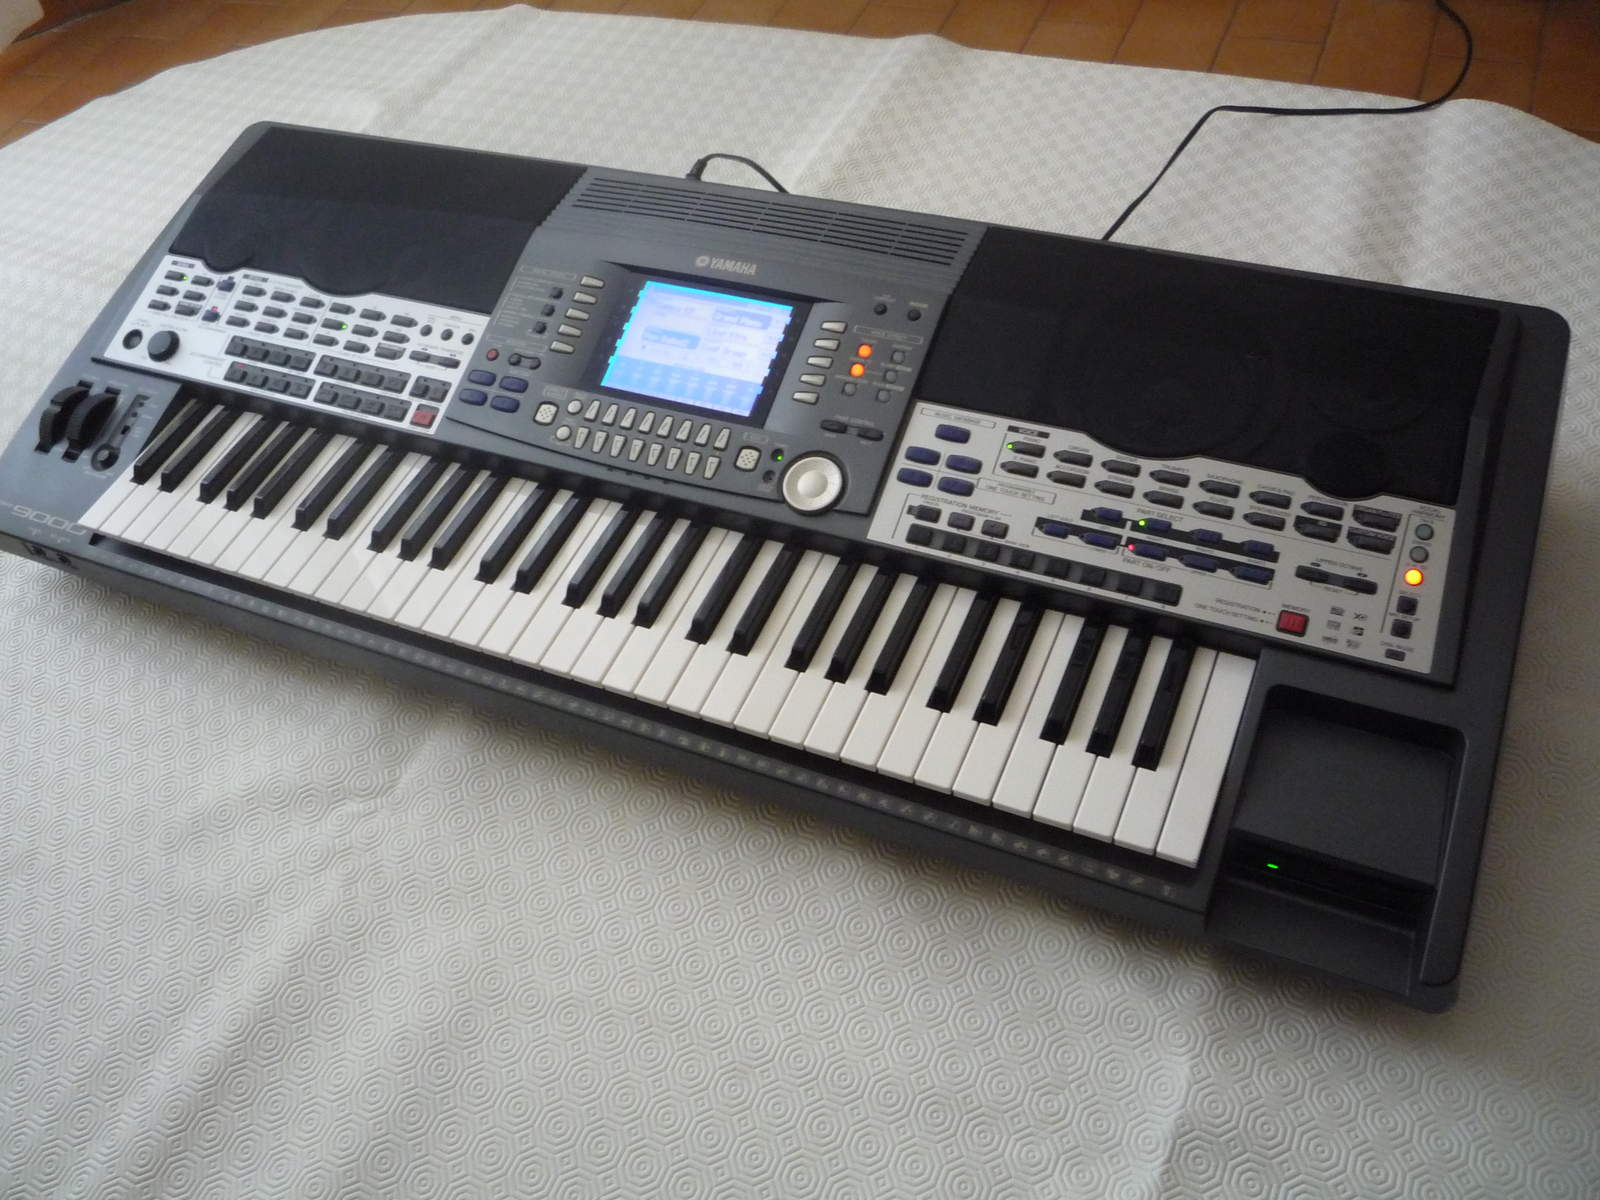 Yamaha psr 9000 image 1441578 audiofanzine for Yamaha professional keyboard price